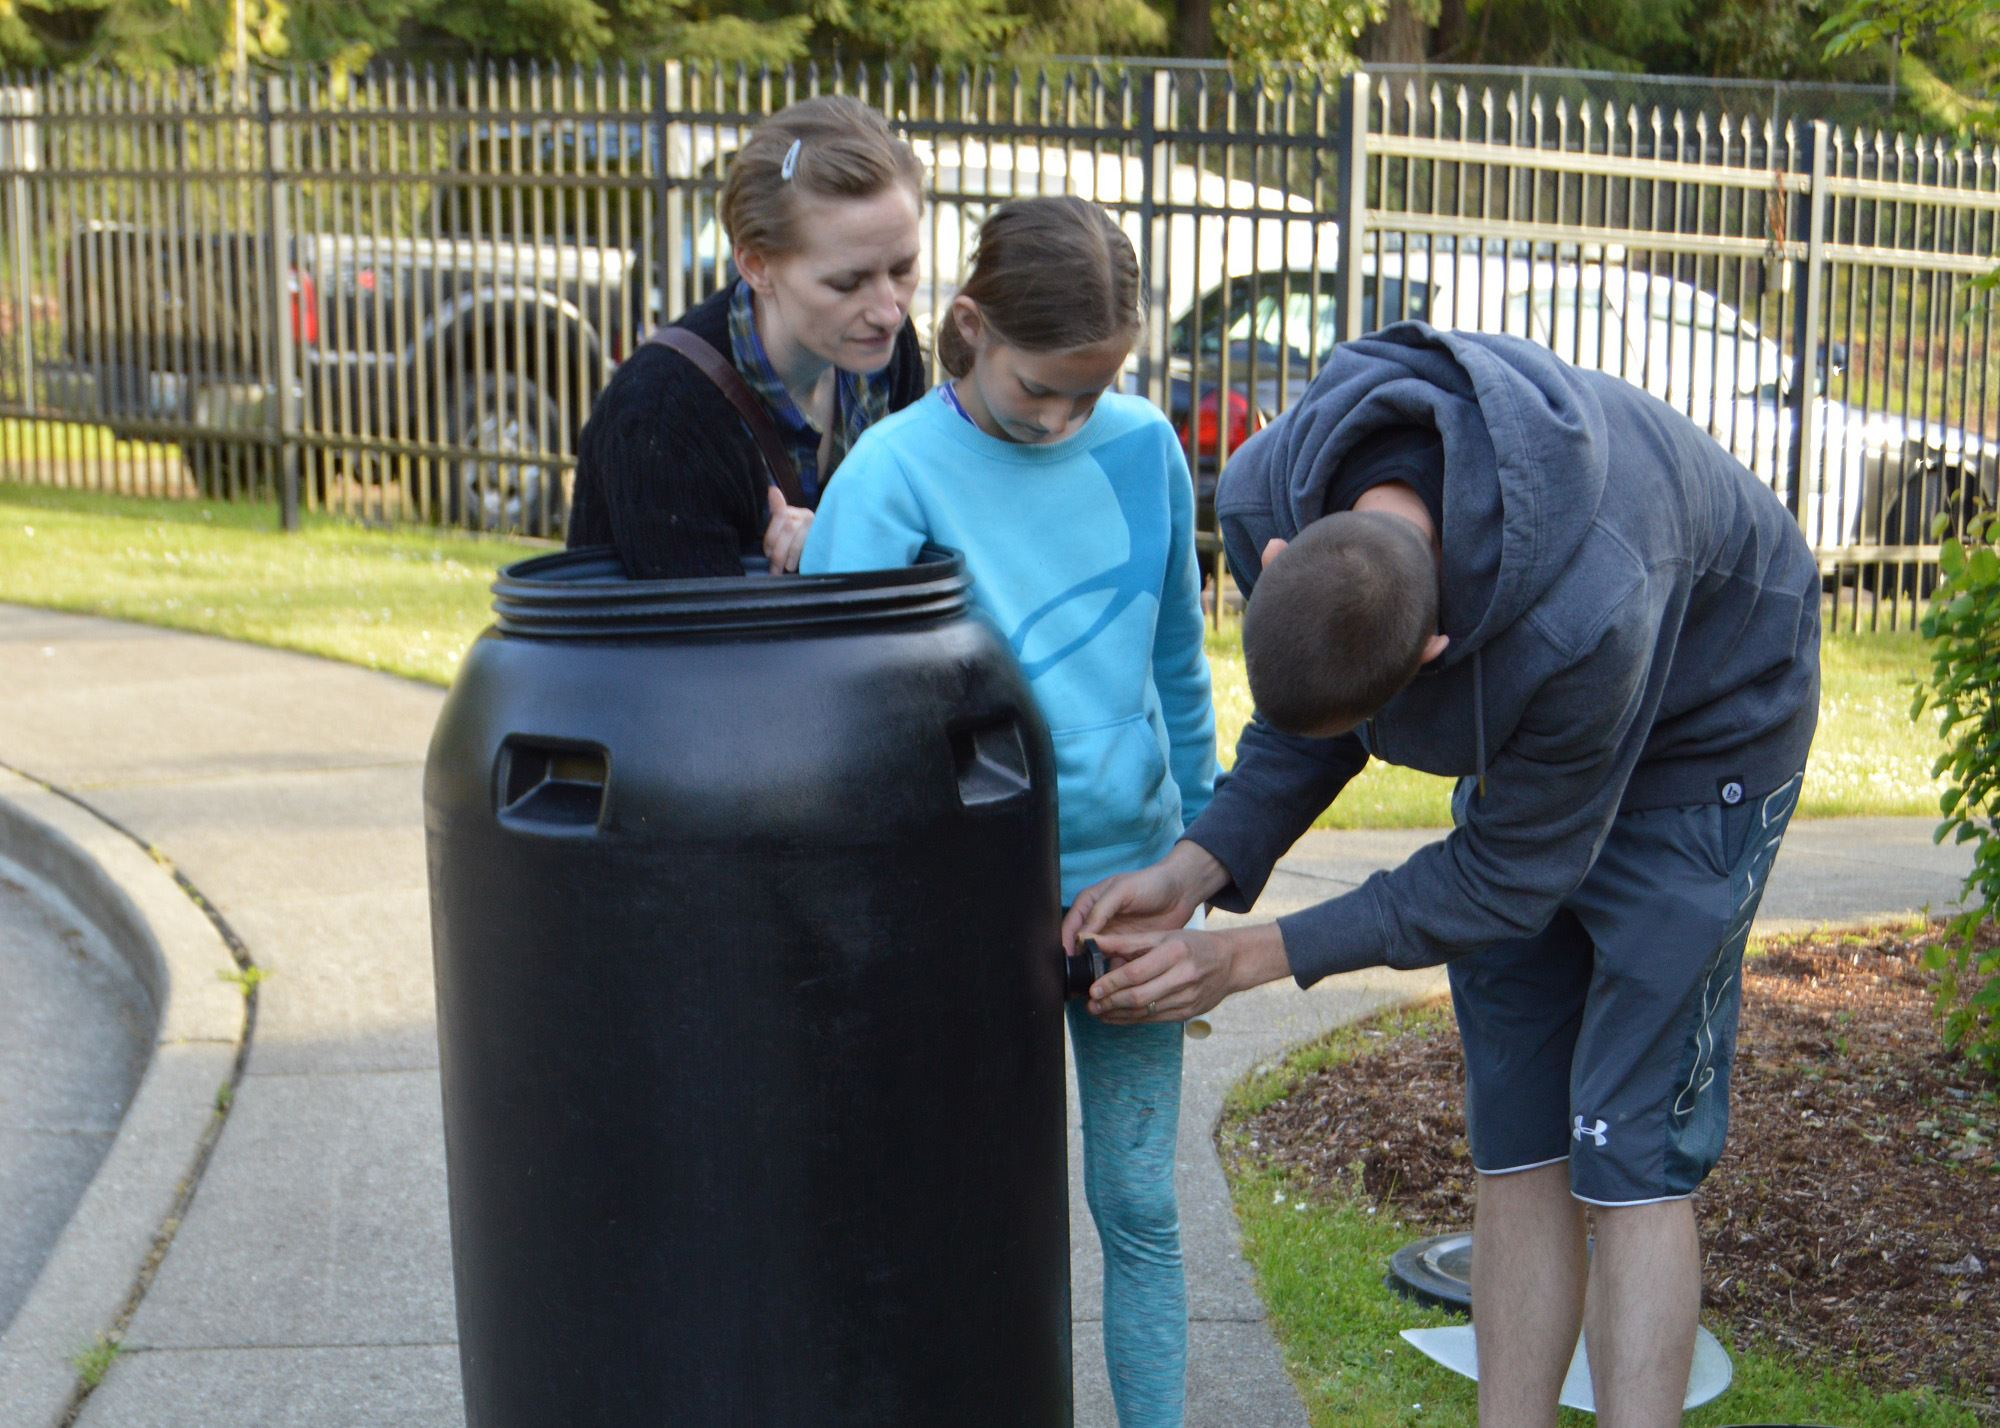 GH Rain Barrel Photo